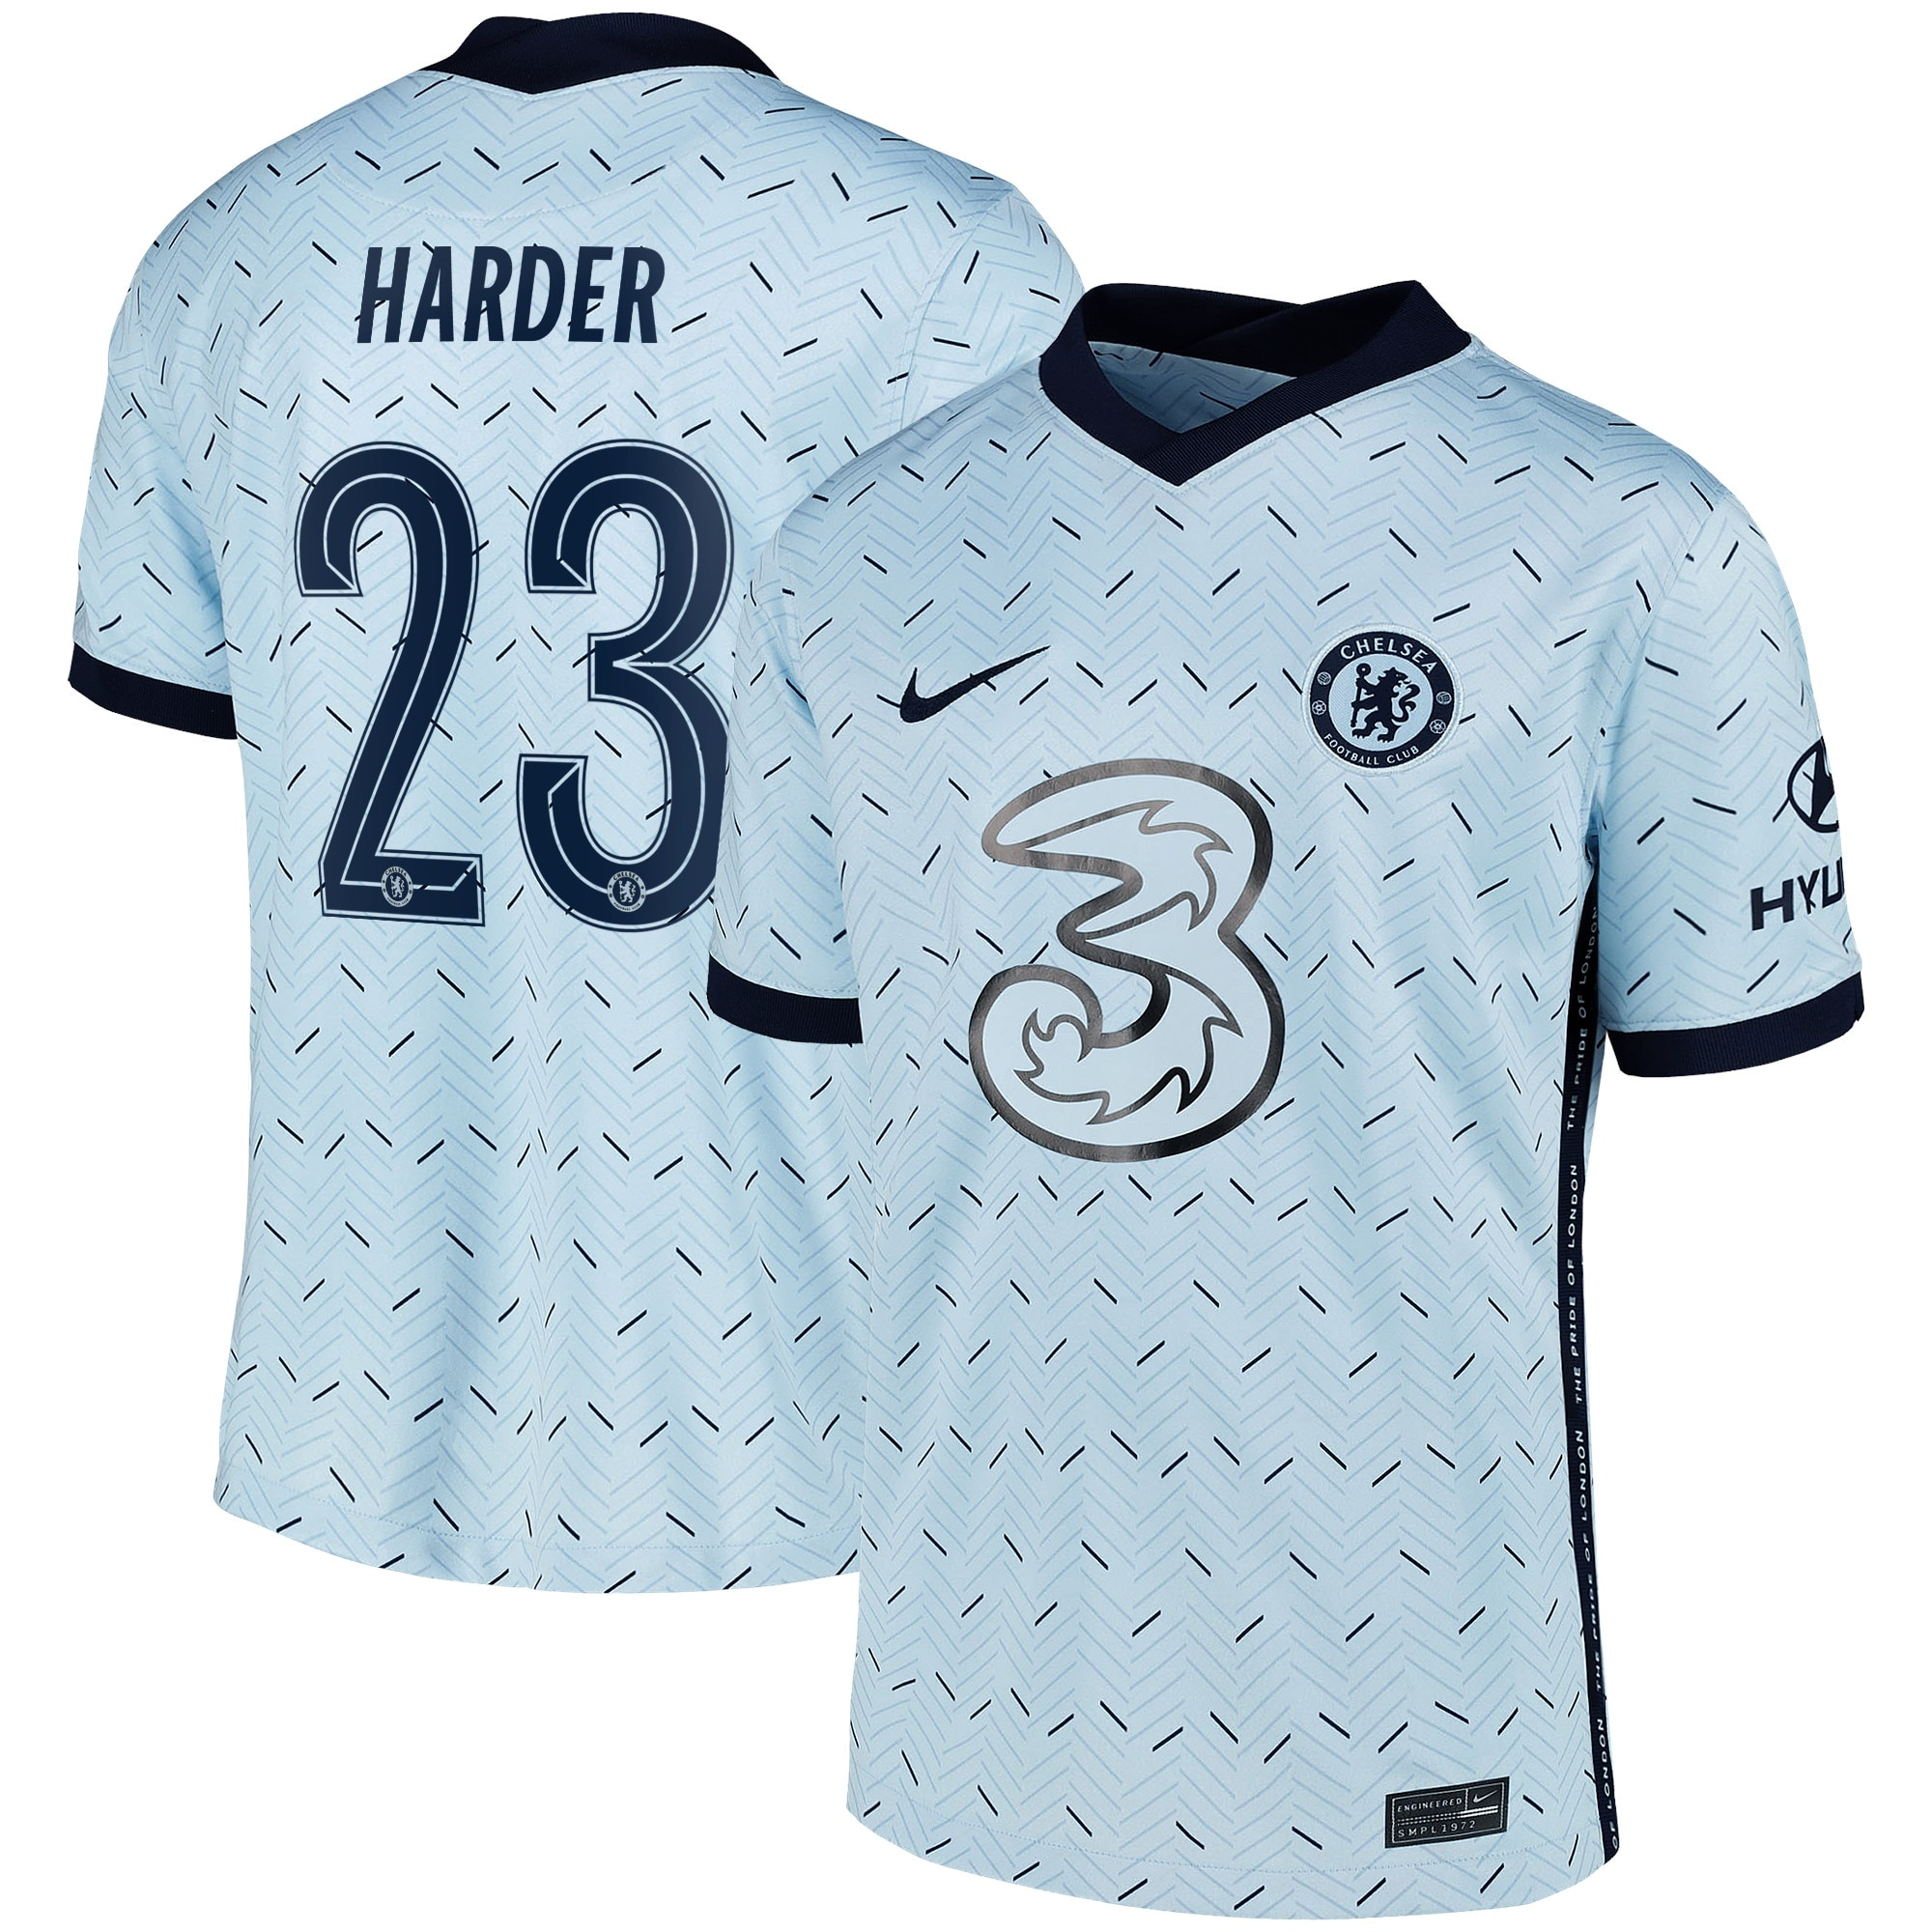 Edouard was born on march 1, 1992, in montivilliers in northern france. Chelsea Cup Away Stadium Shirt 2020-21 - Kids with Harder